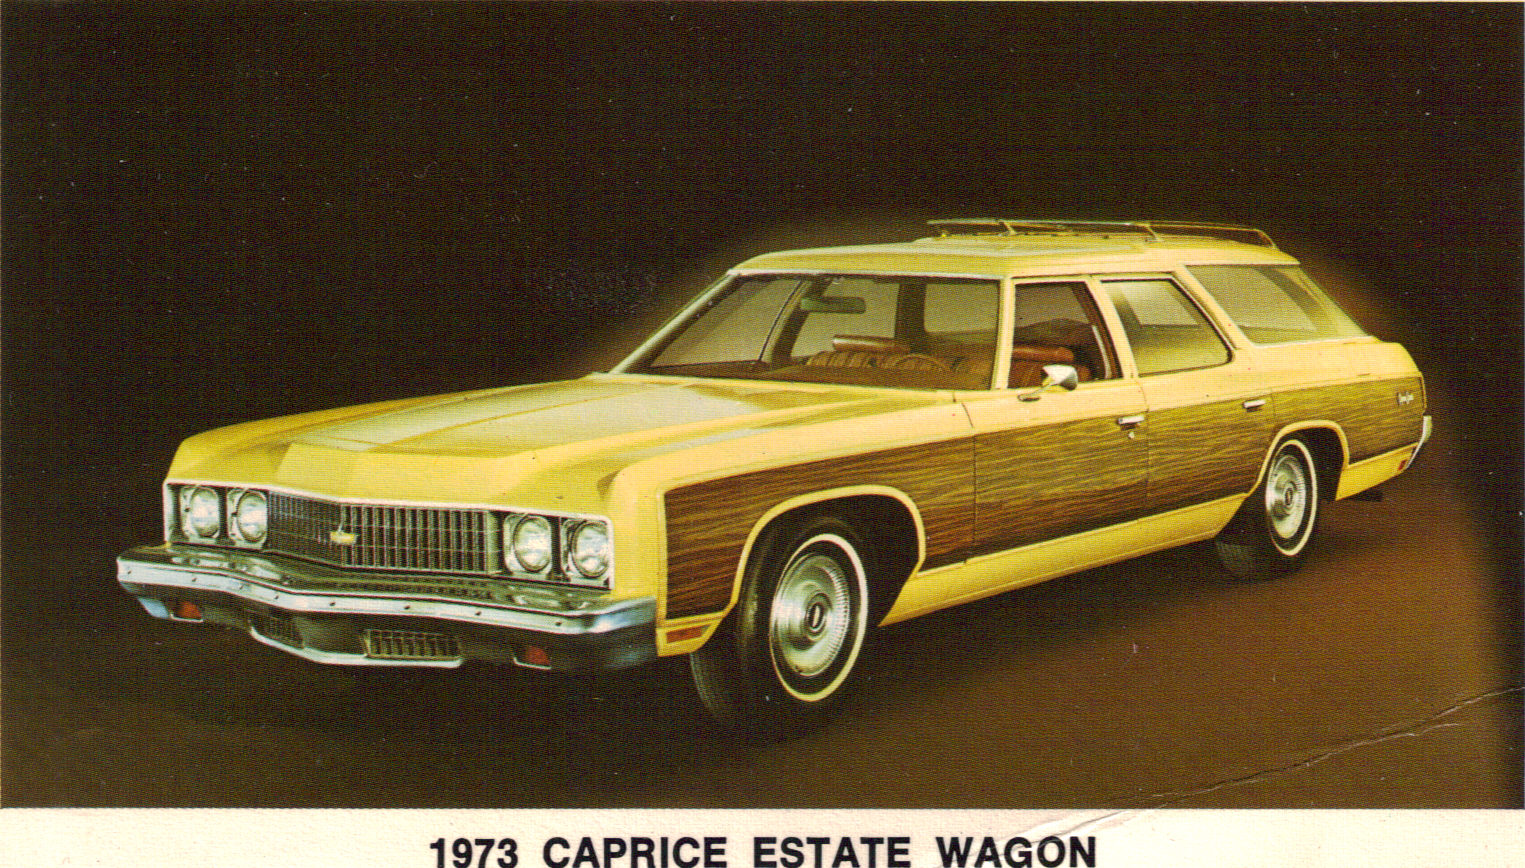 1973 Chevrolet Caprice Estate Station Wagon | Flickr - Photo Sharing!